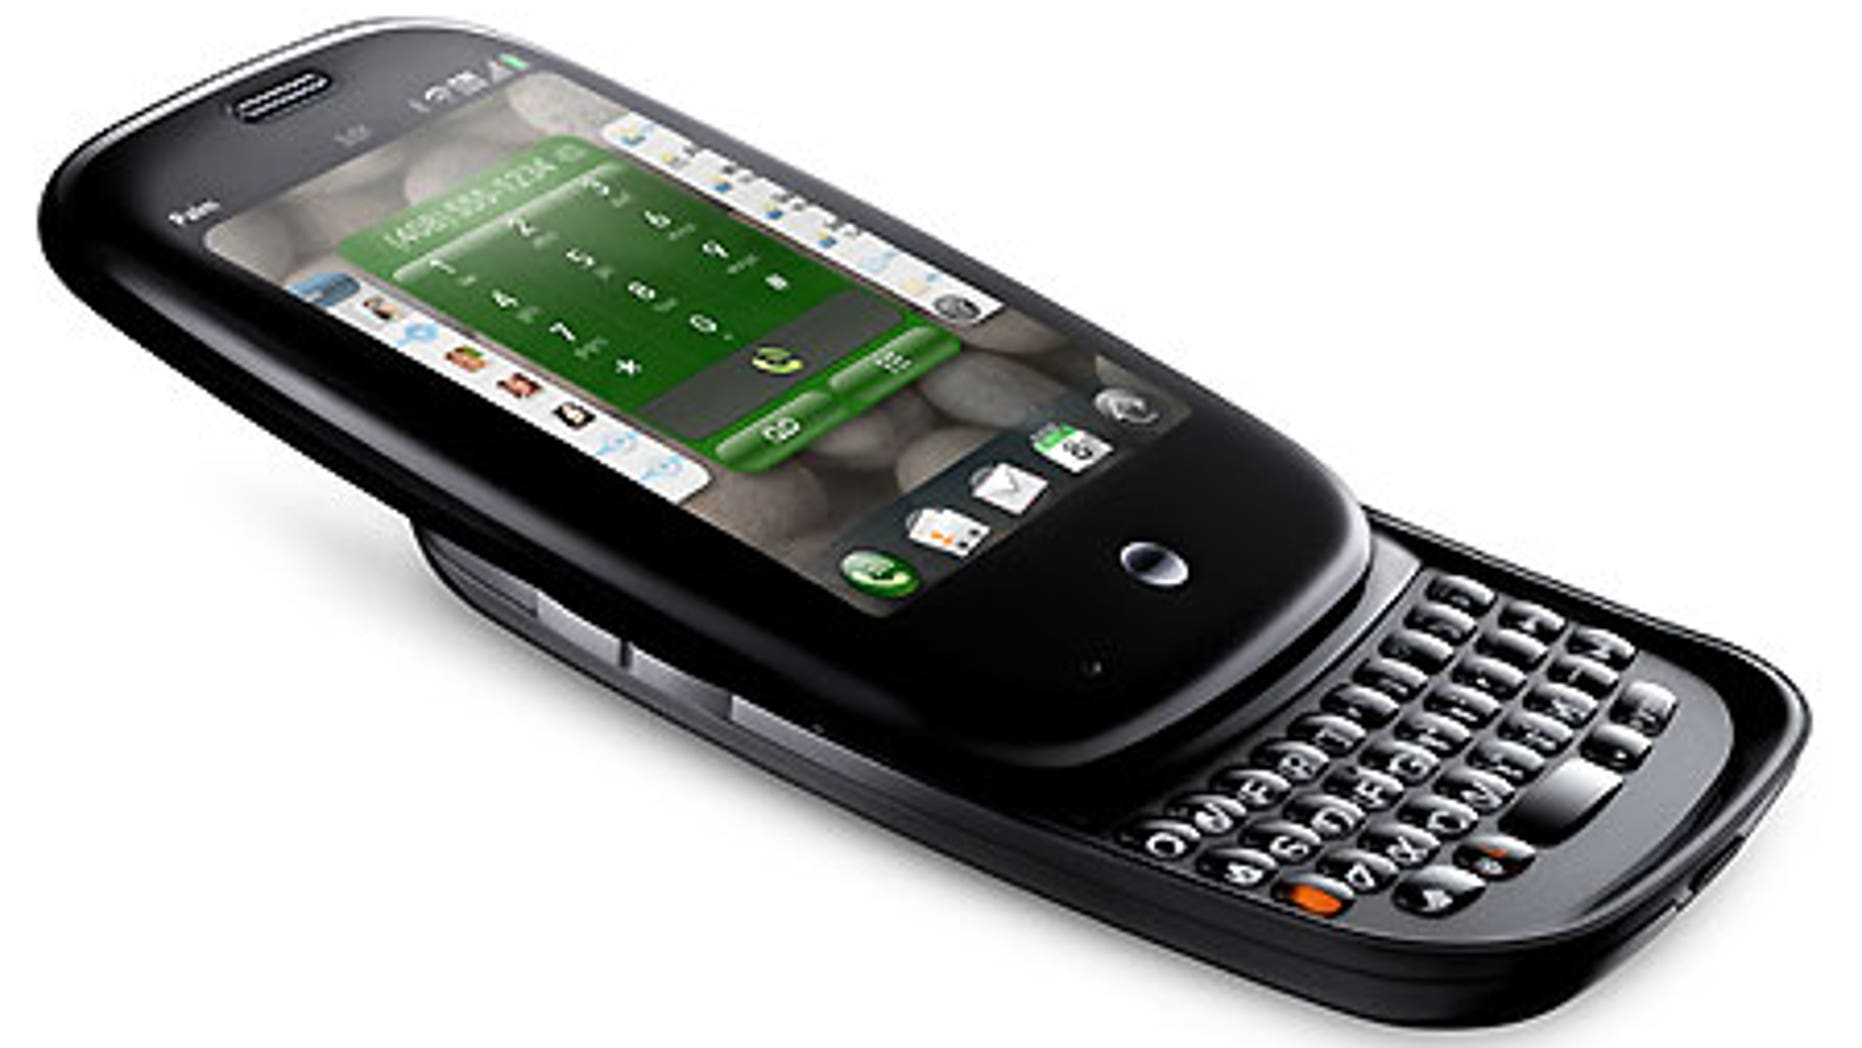 Palm's Pre smartphone slides open to reveal a modified QWERTY keyboard.